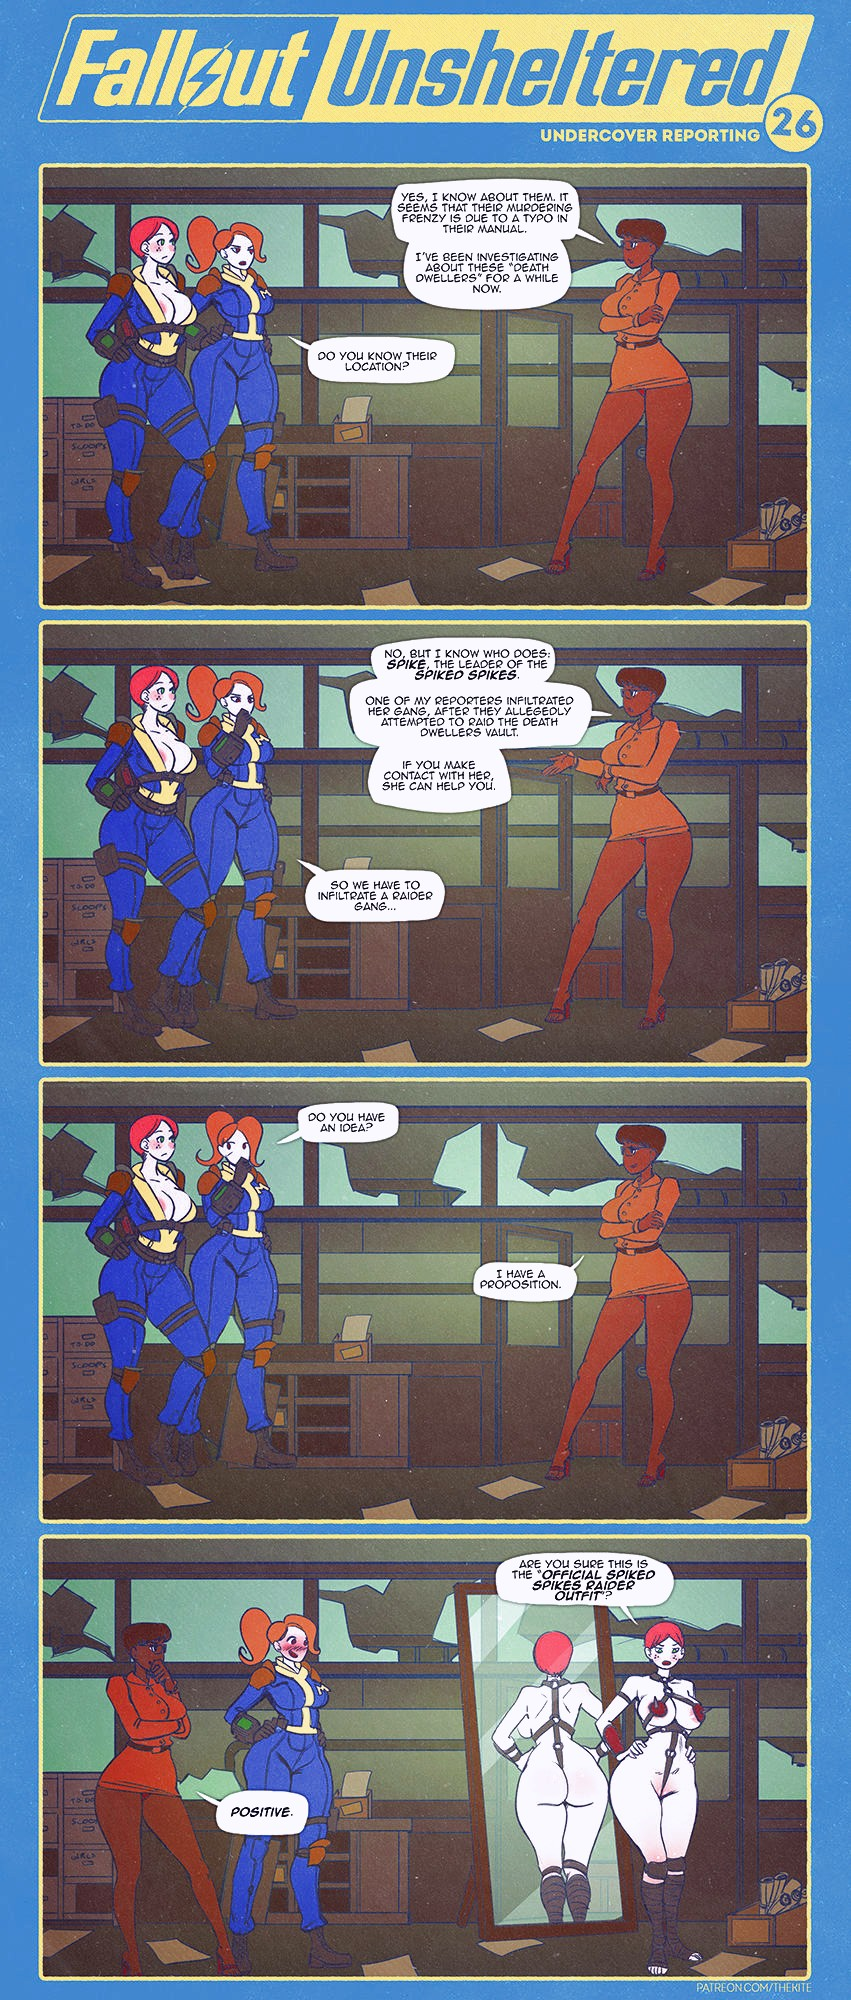 Fallout Unsheltered page 29